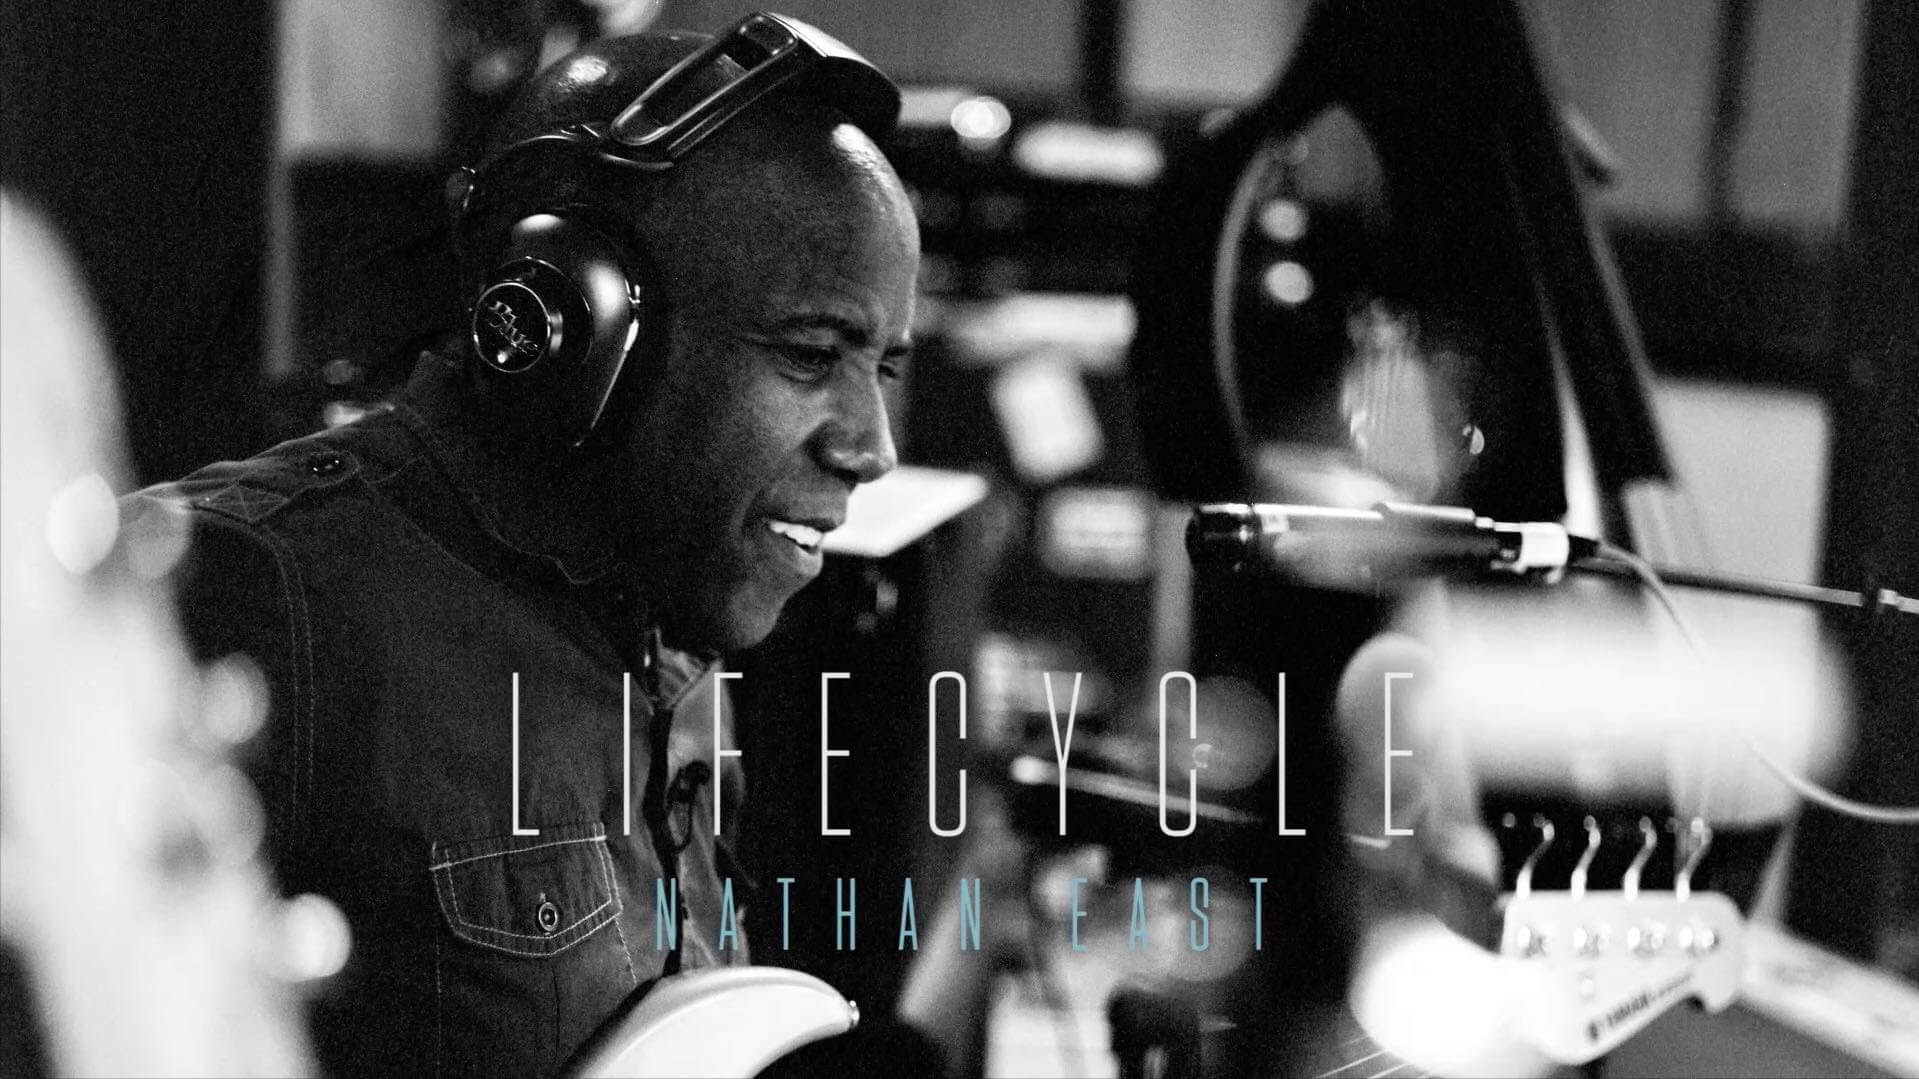 thejazzworld.com top ten nathan east lifecycle